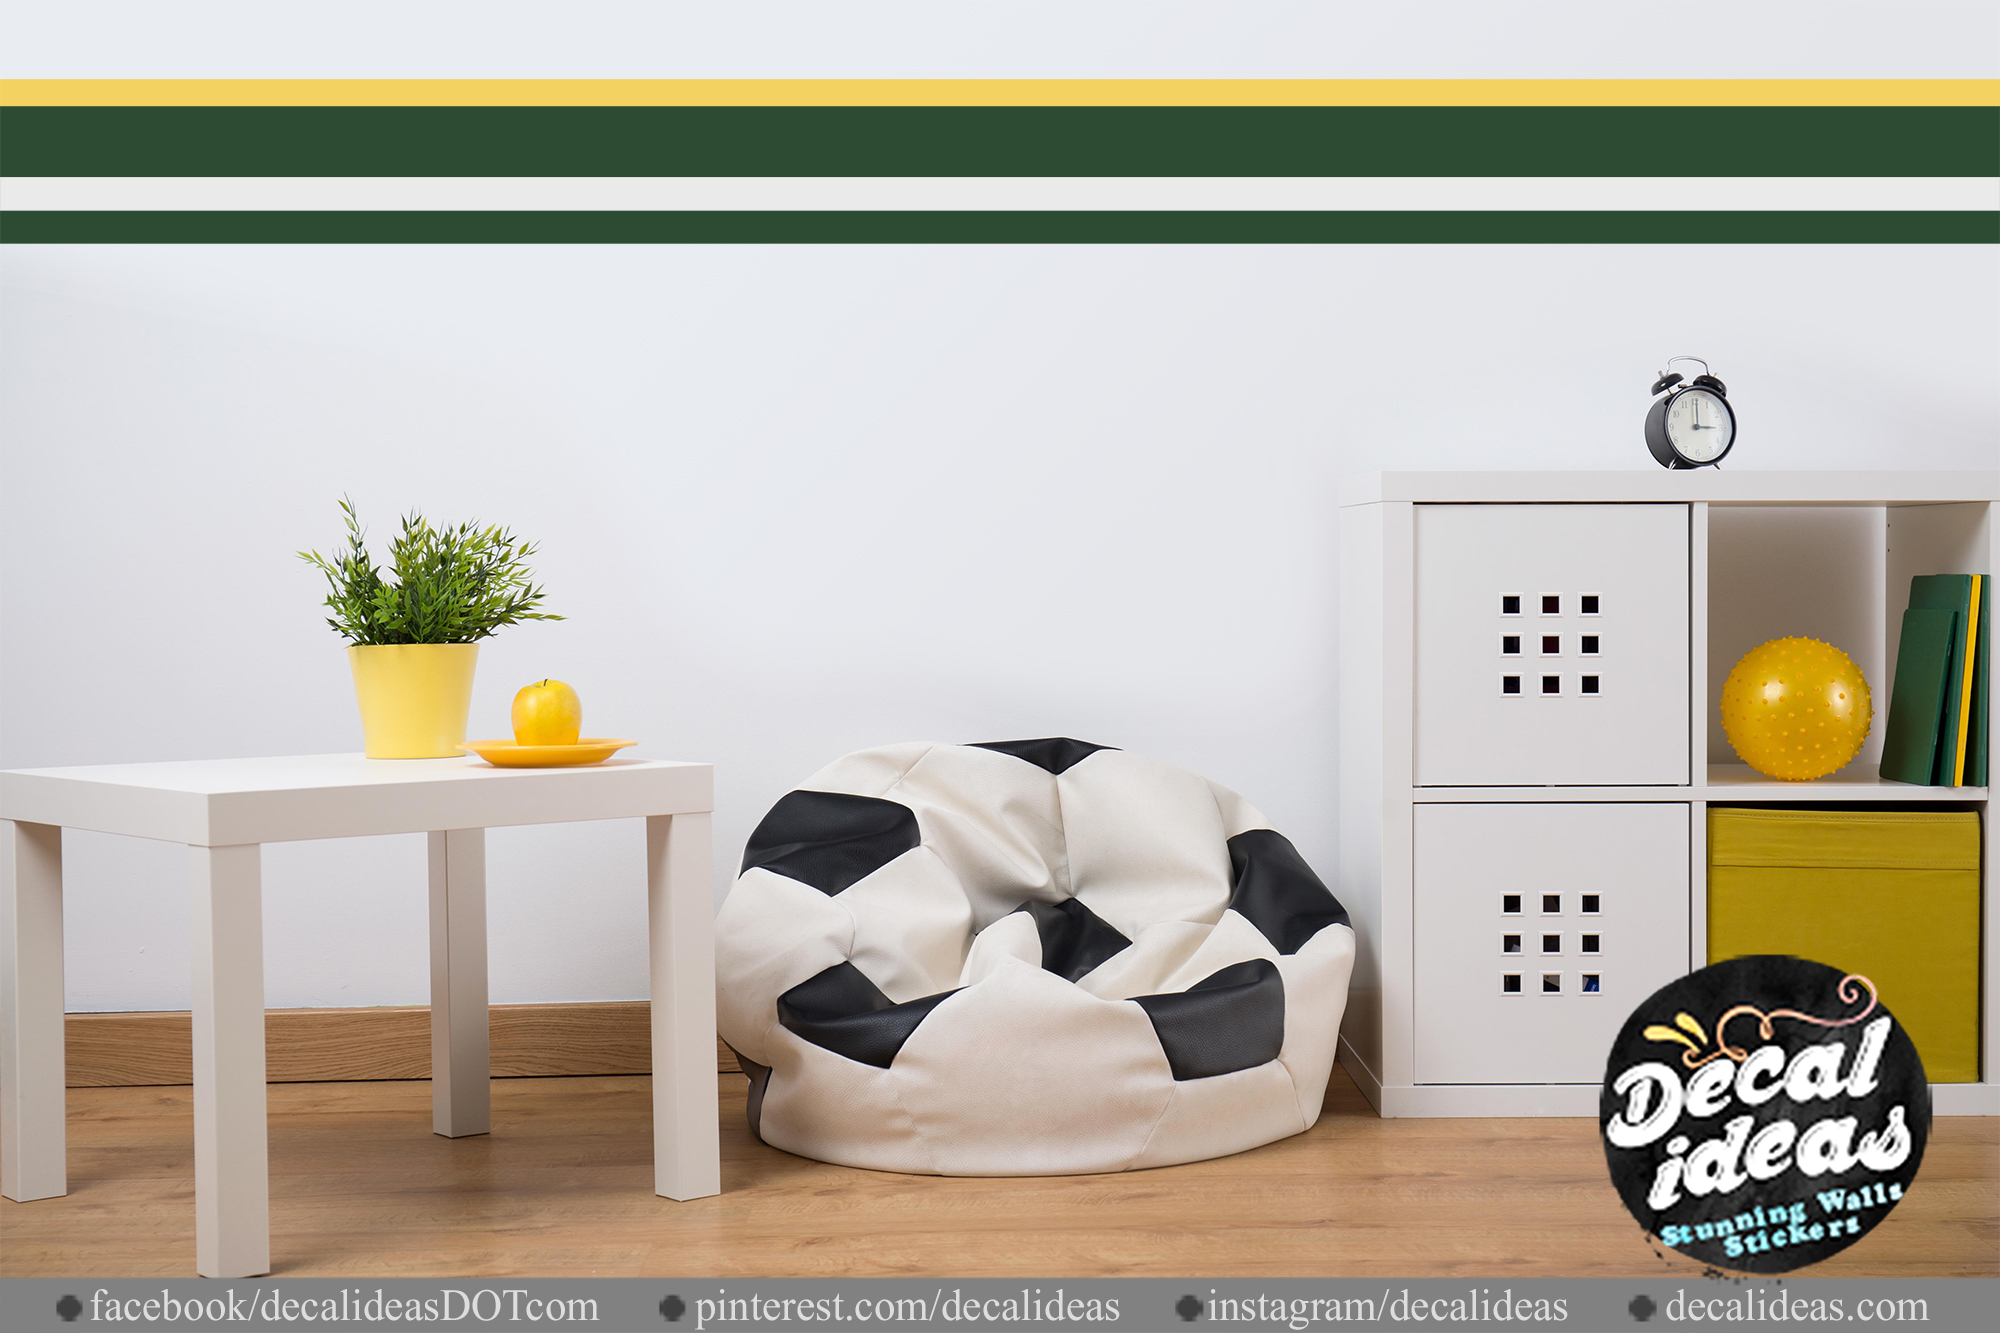 Wall Stripe Decals Personalized Wall Panel Sticker 02 Deaclideas Wall Decals